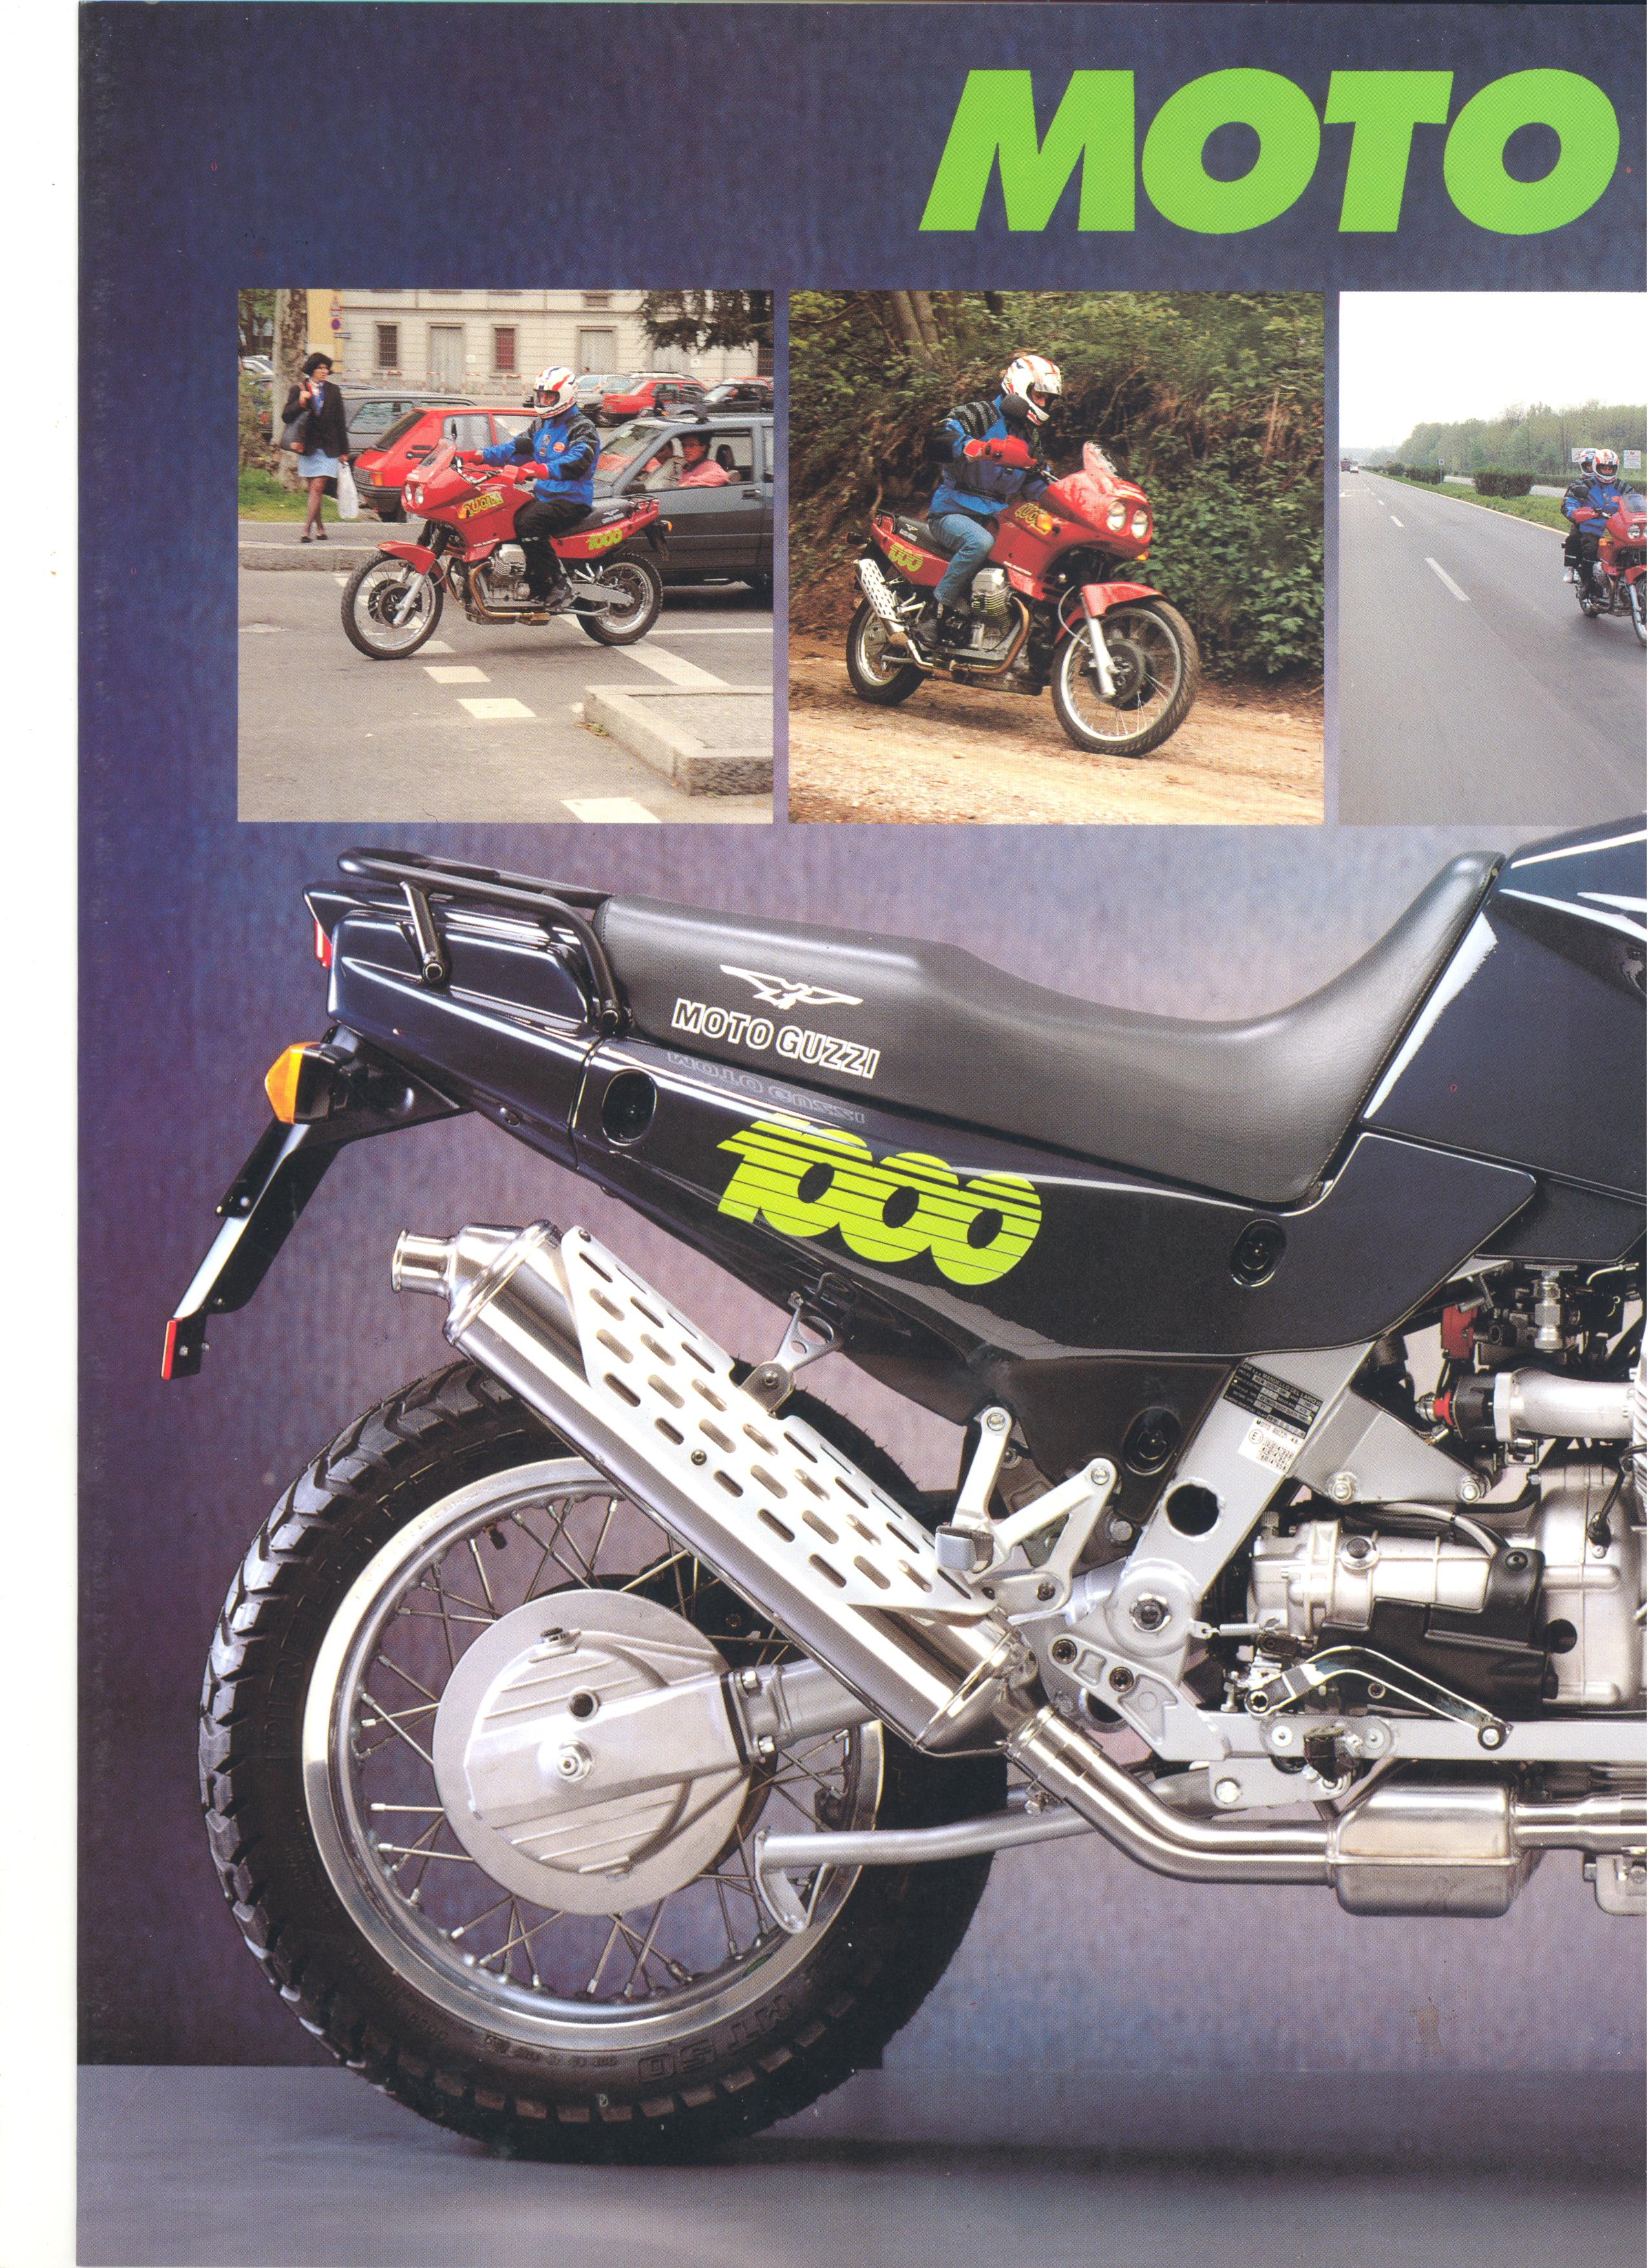 Moto Guzzi factory brochure: Quota 1000